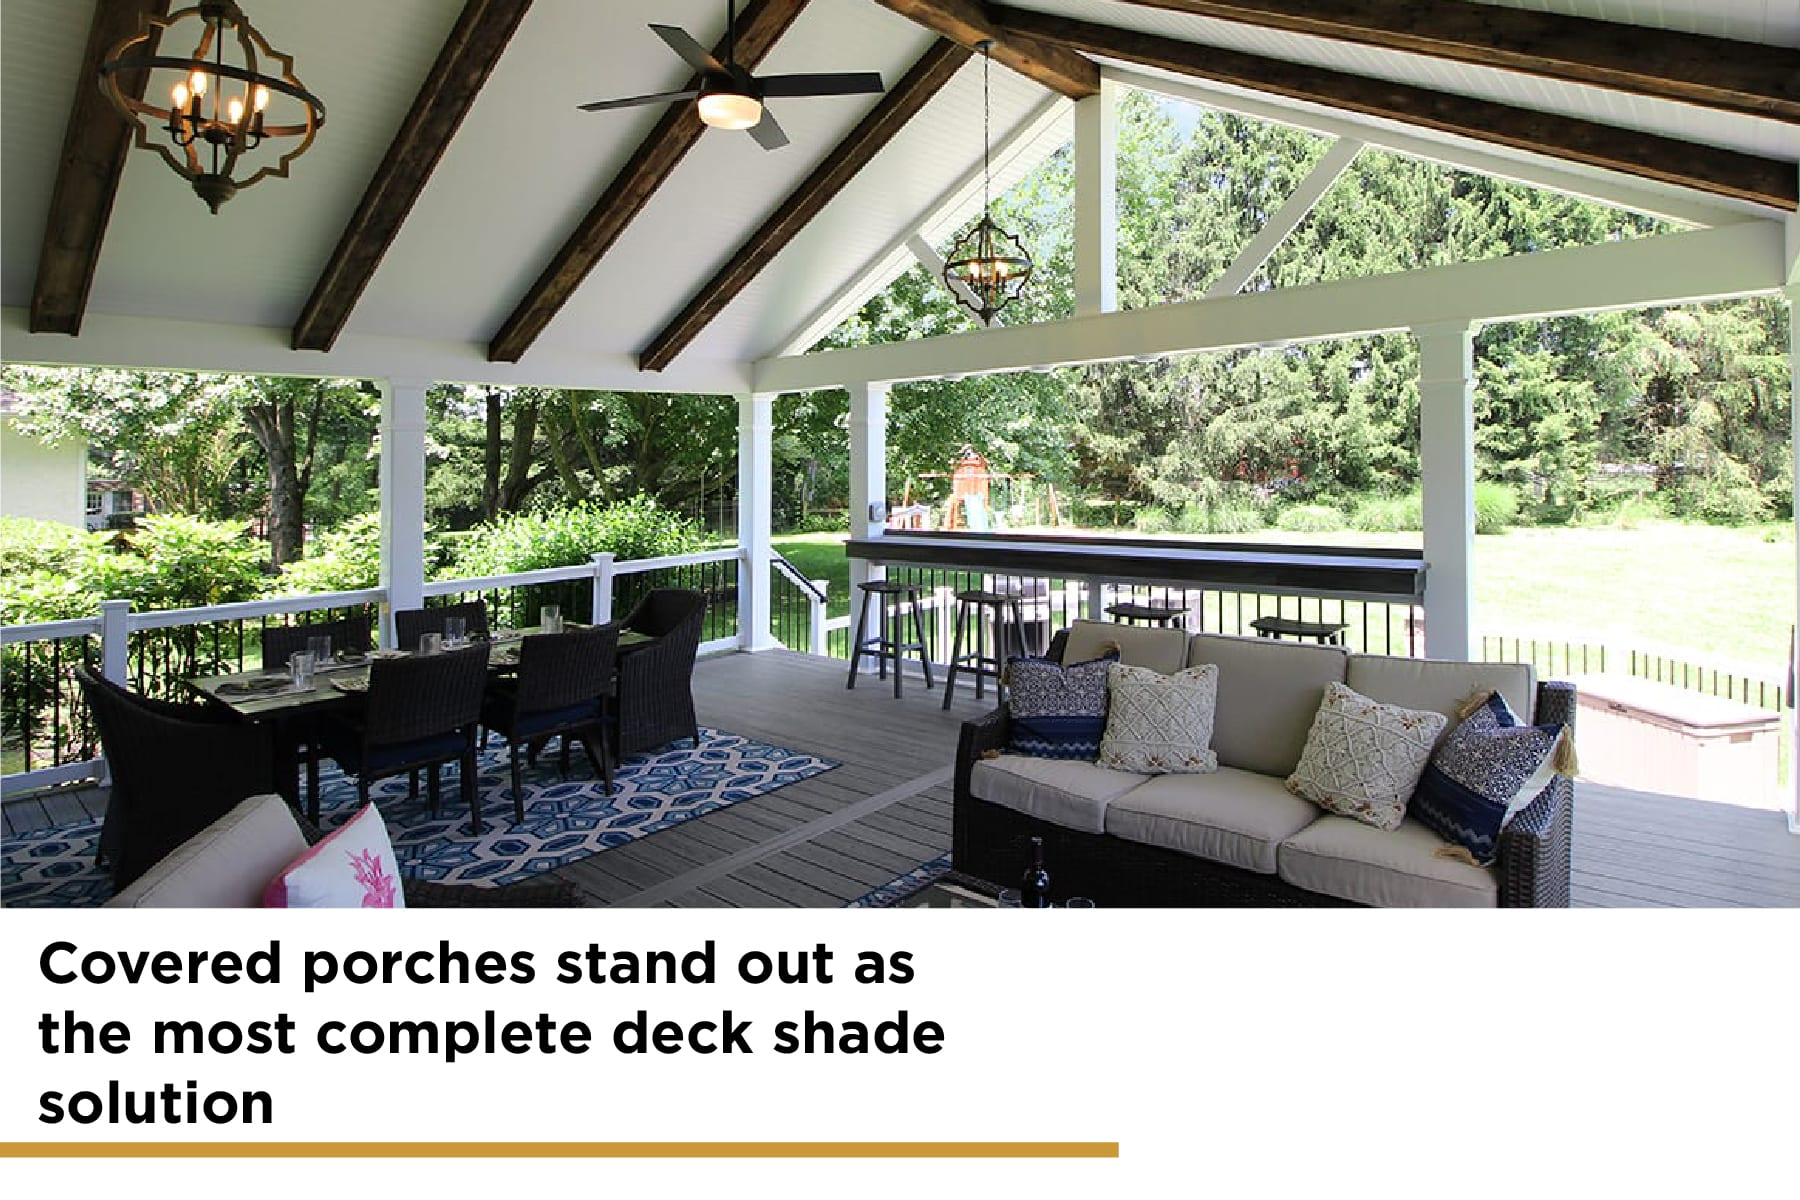 covered porches are the most complete deck shade solution